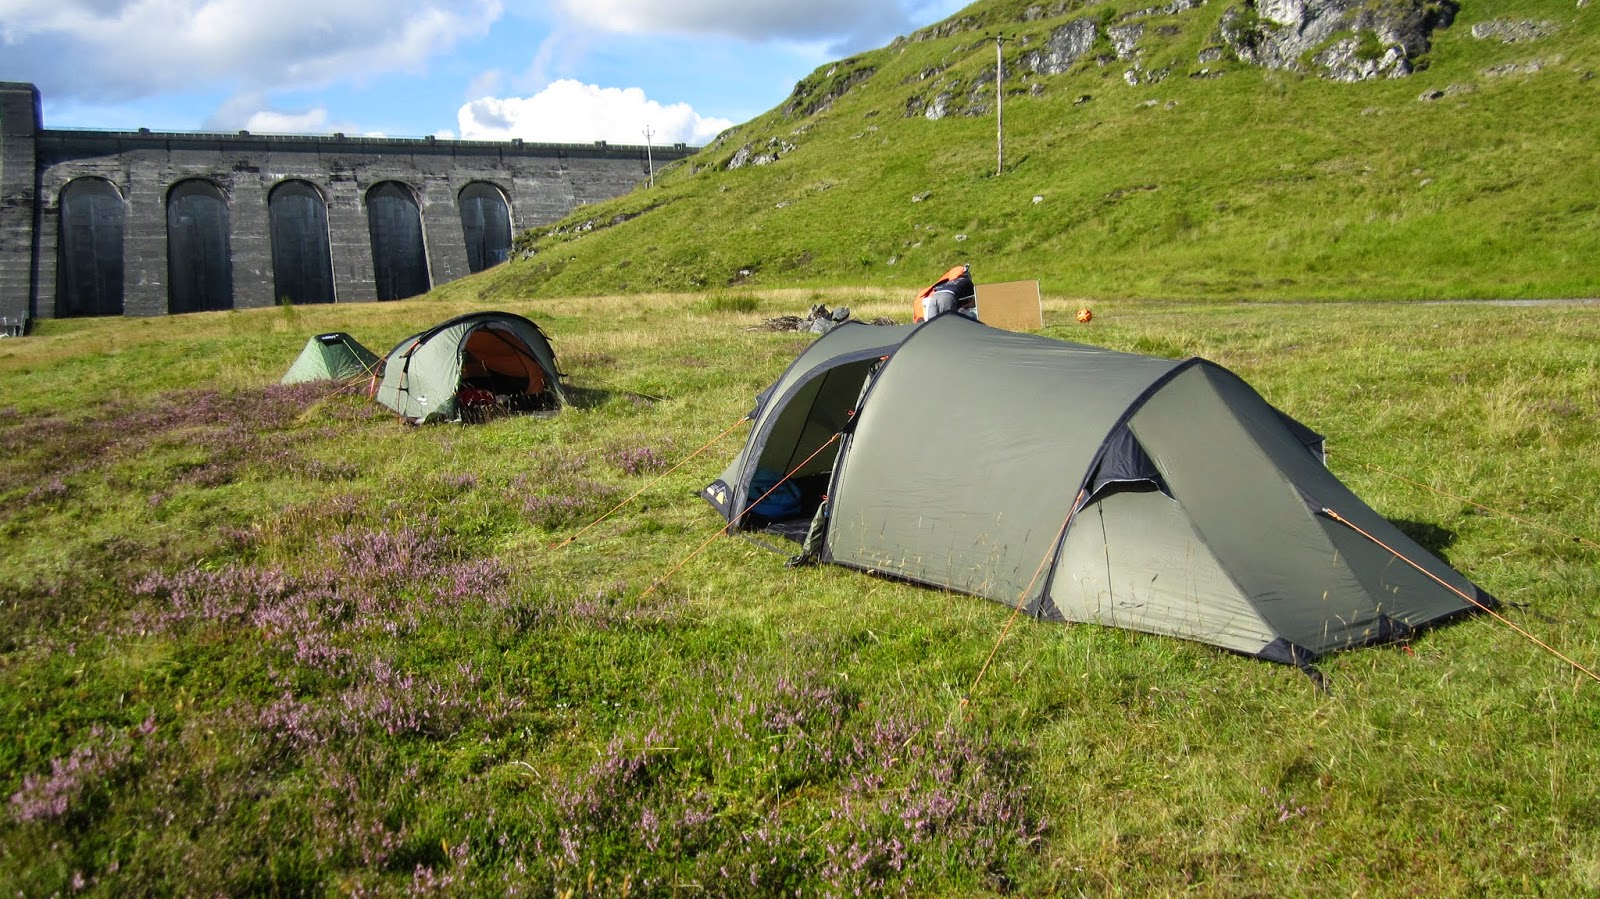 Gelert Solo farthest away & Mountain Equipment Dragonfly 2 | Kingdomguides blog by Murray Wilson